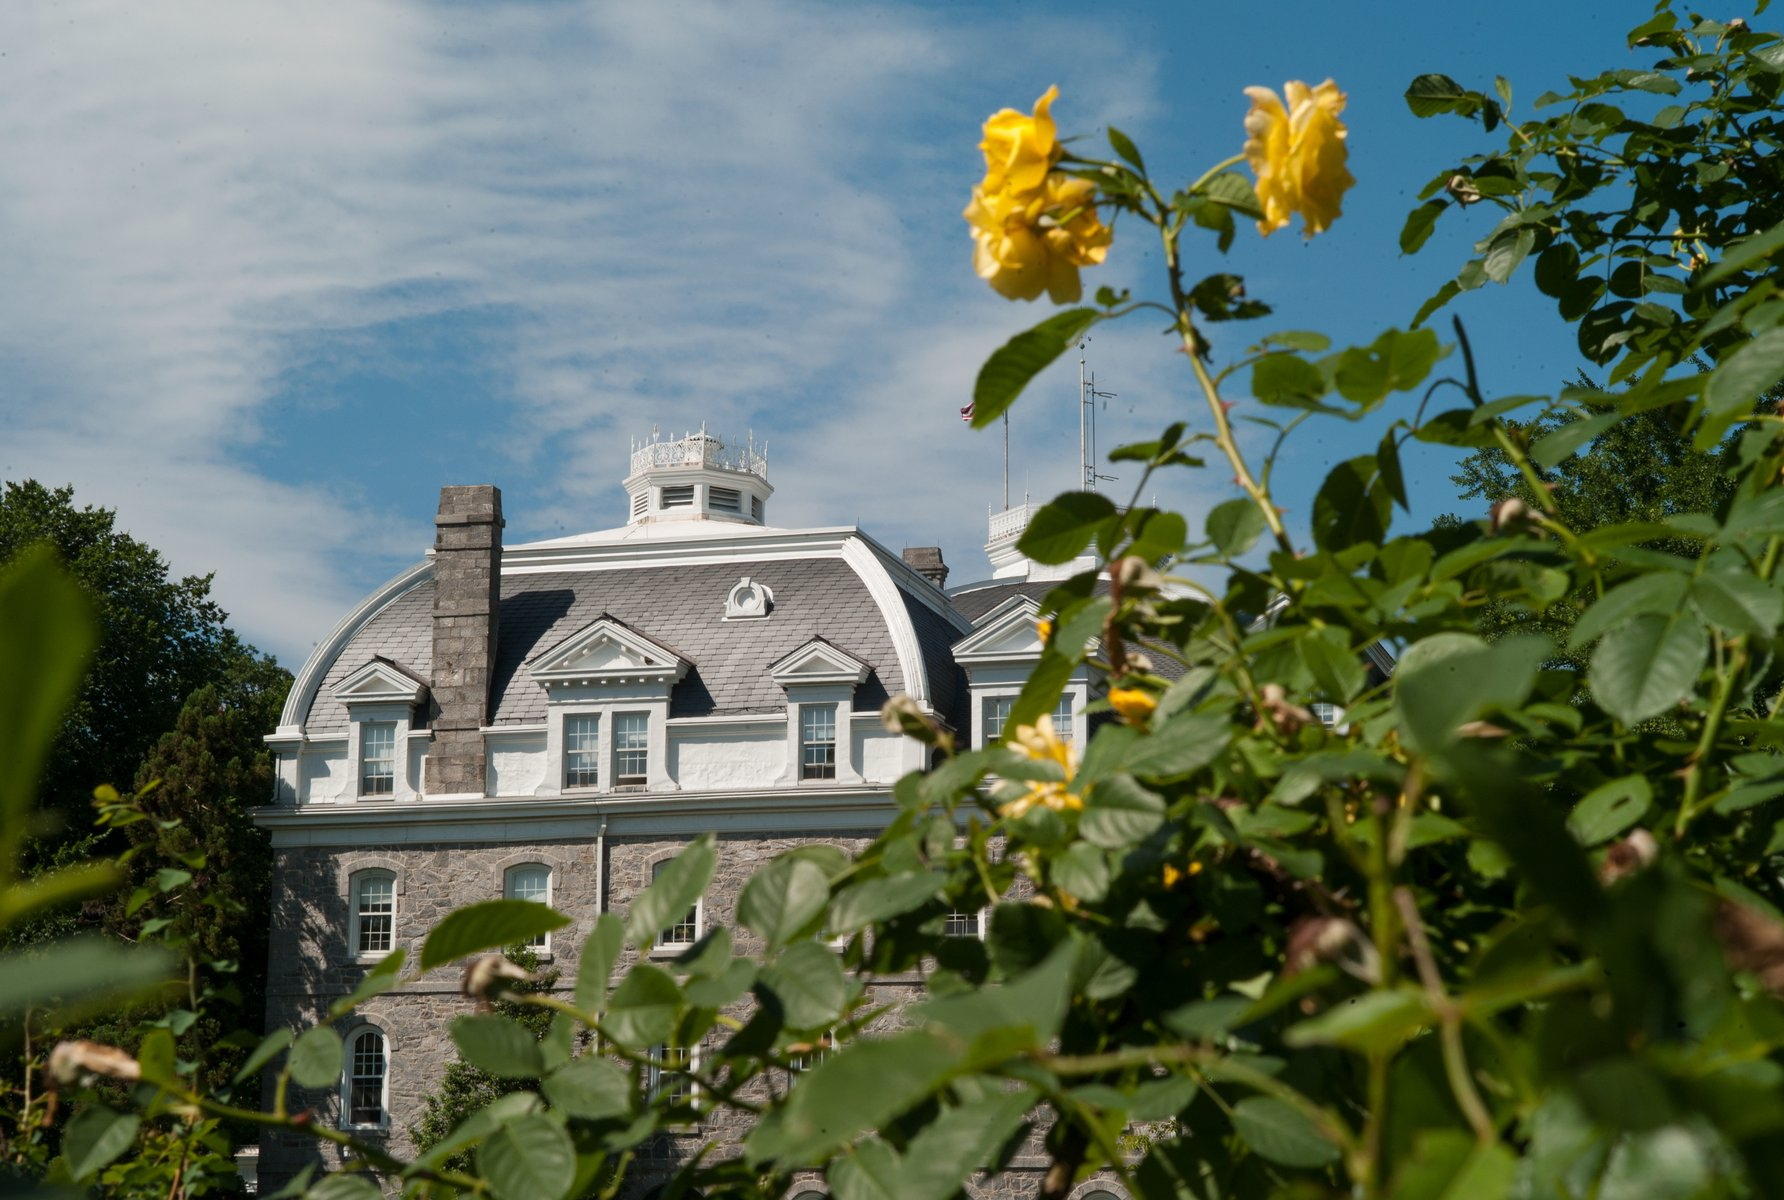 Parrish Hall as seen from the Dean Bond Rose Garden